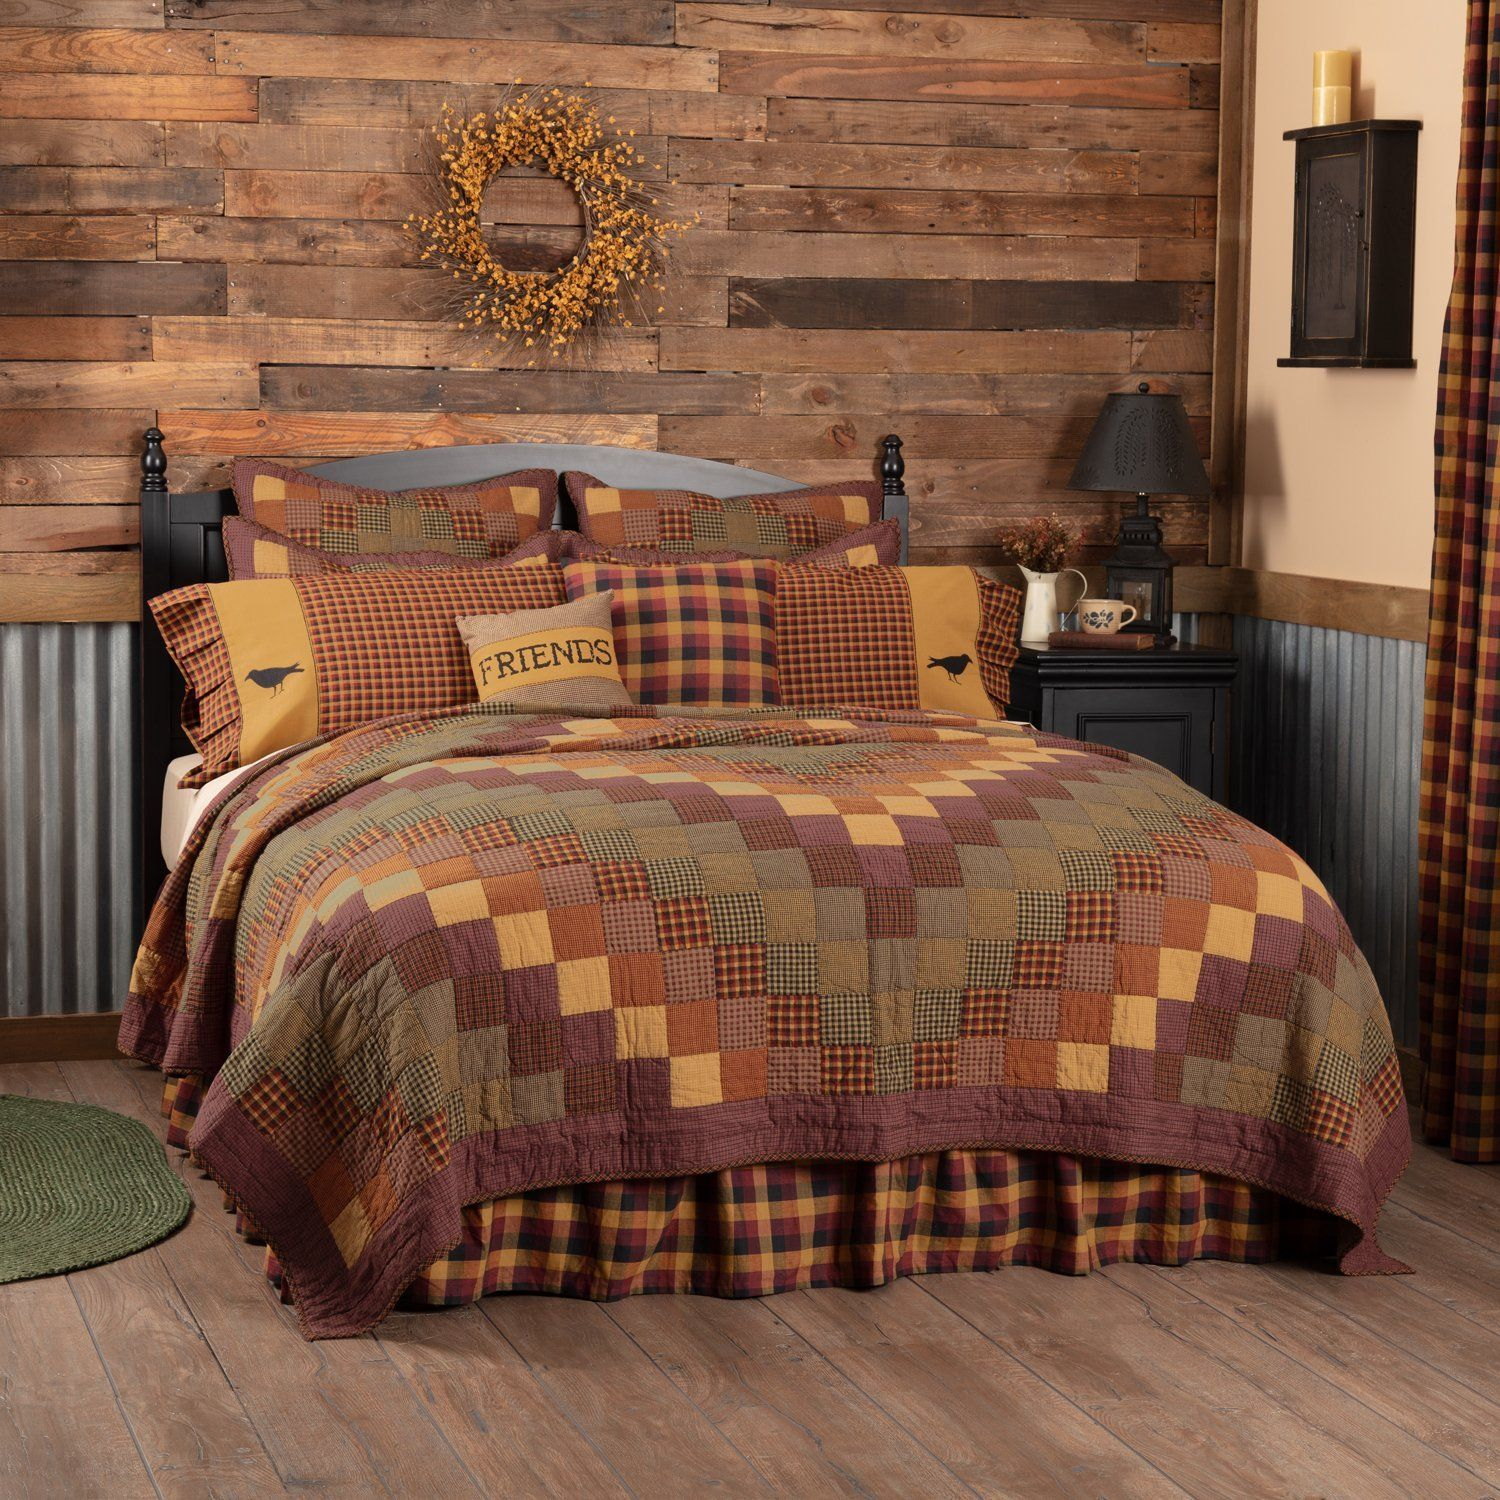 Deep Red VHC Brands Primitive Bedding Antique Patch Cotton Pre-Washed Patchwork California King Quilt